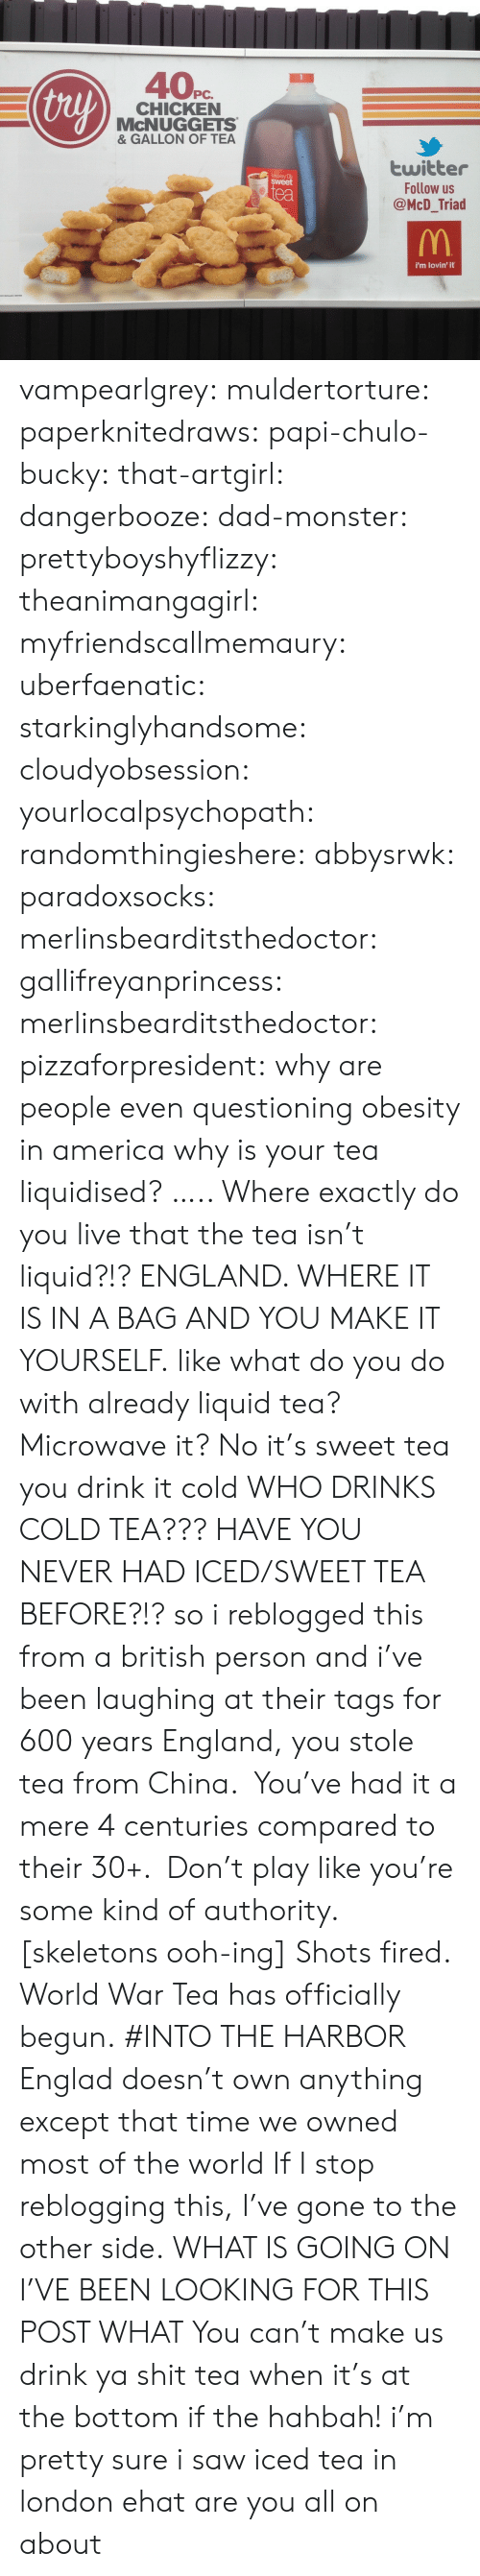 Iced Tea: thy  PC.  CHICKEN  McNUGGETS  & GALLON OF TEA  twitter  Follow us  @McD_Triad  Mickey Ds  sweet  ea  i'm lovin' it vampearlgrey:  muldertorture: paperknitedraws:  papi-chulo-bucky:  that-artgirl:  dangerbooze:  dad-monster:  prettyboyshyflizzy:  theanimangagirl:  myfriendscallmemaury:  uberfaenatic:  starkinglyhandsome:  cloudyobsession:  yourlocalpsychopath:  randomthingieshere:  abbysrwk:  paradoxsocks:  merlinsbearditsthedoctor:  gallifreyanprincess:  merlinsbearditsthedoctor:  pizzaforpresident:  why are people even questioning obesity in america  why is your tea liquidised?  ….. Where exactly do you live that the tea isn't liquid?!?  ENGLAND. WHERE IT IS IN A BAG AND YOU MAKE IT YOURSELF.  like what do you do with already liquid tea? Microwave it?   No it's sweet tea you drink it cold  WHO DRINKS COLD TEA???  HAVE YOU NEVER HAD ICED/SWEET TEA BEFORE?!?  so i reblogged this from a british person and i've been laughing at their tags for 600 years    England, you stole tea from China. You've had it a mere 4 centuries compared to their 30+. Don't play like you're some kind of authority.  [skeletons ooh-ing]  Shots fired. World War Tea has officially begun.  #INTO THE HARBOR    Englad doesn't own anything   except that time we owned most of the world     If I stop reblogging this, I've gone to the other side.   WHAT IS GOING ON  I'VE BEEN LOOKING FOR THIS POST WHAT   You can't make us drink ya shit tea when it's at the bottom if the hahbah!     i'm pretty sure i saw iced tea in london ehat are you all on about